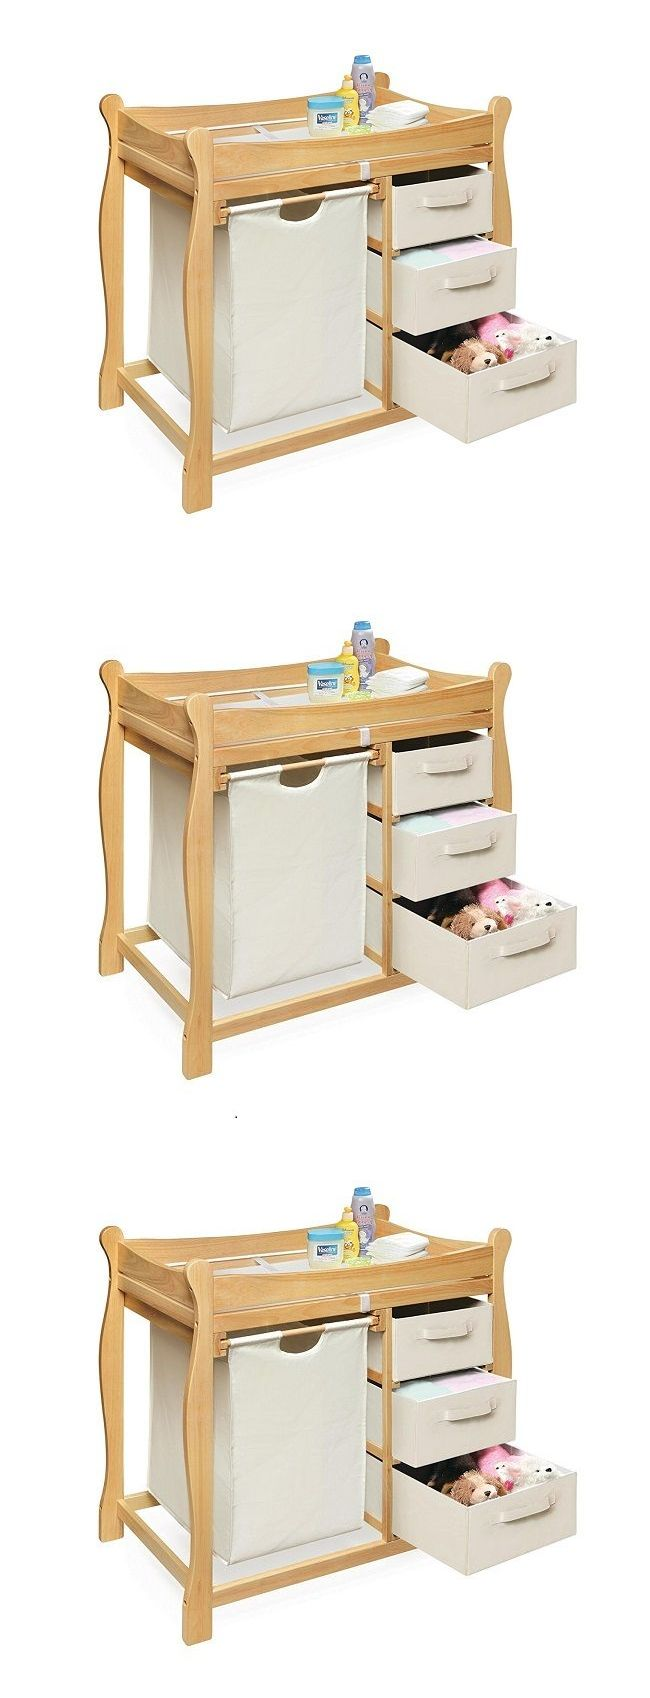 Changing Tables 20424: Changing Table Dresser Baby Furniture Diaper Change Organizer With Hamper Basket -> BUY IT NOW ONLY: $148.58 on eBay!